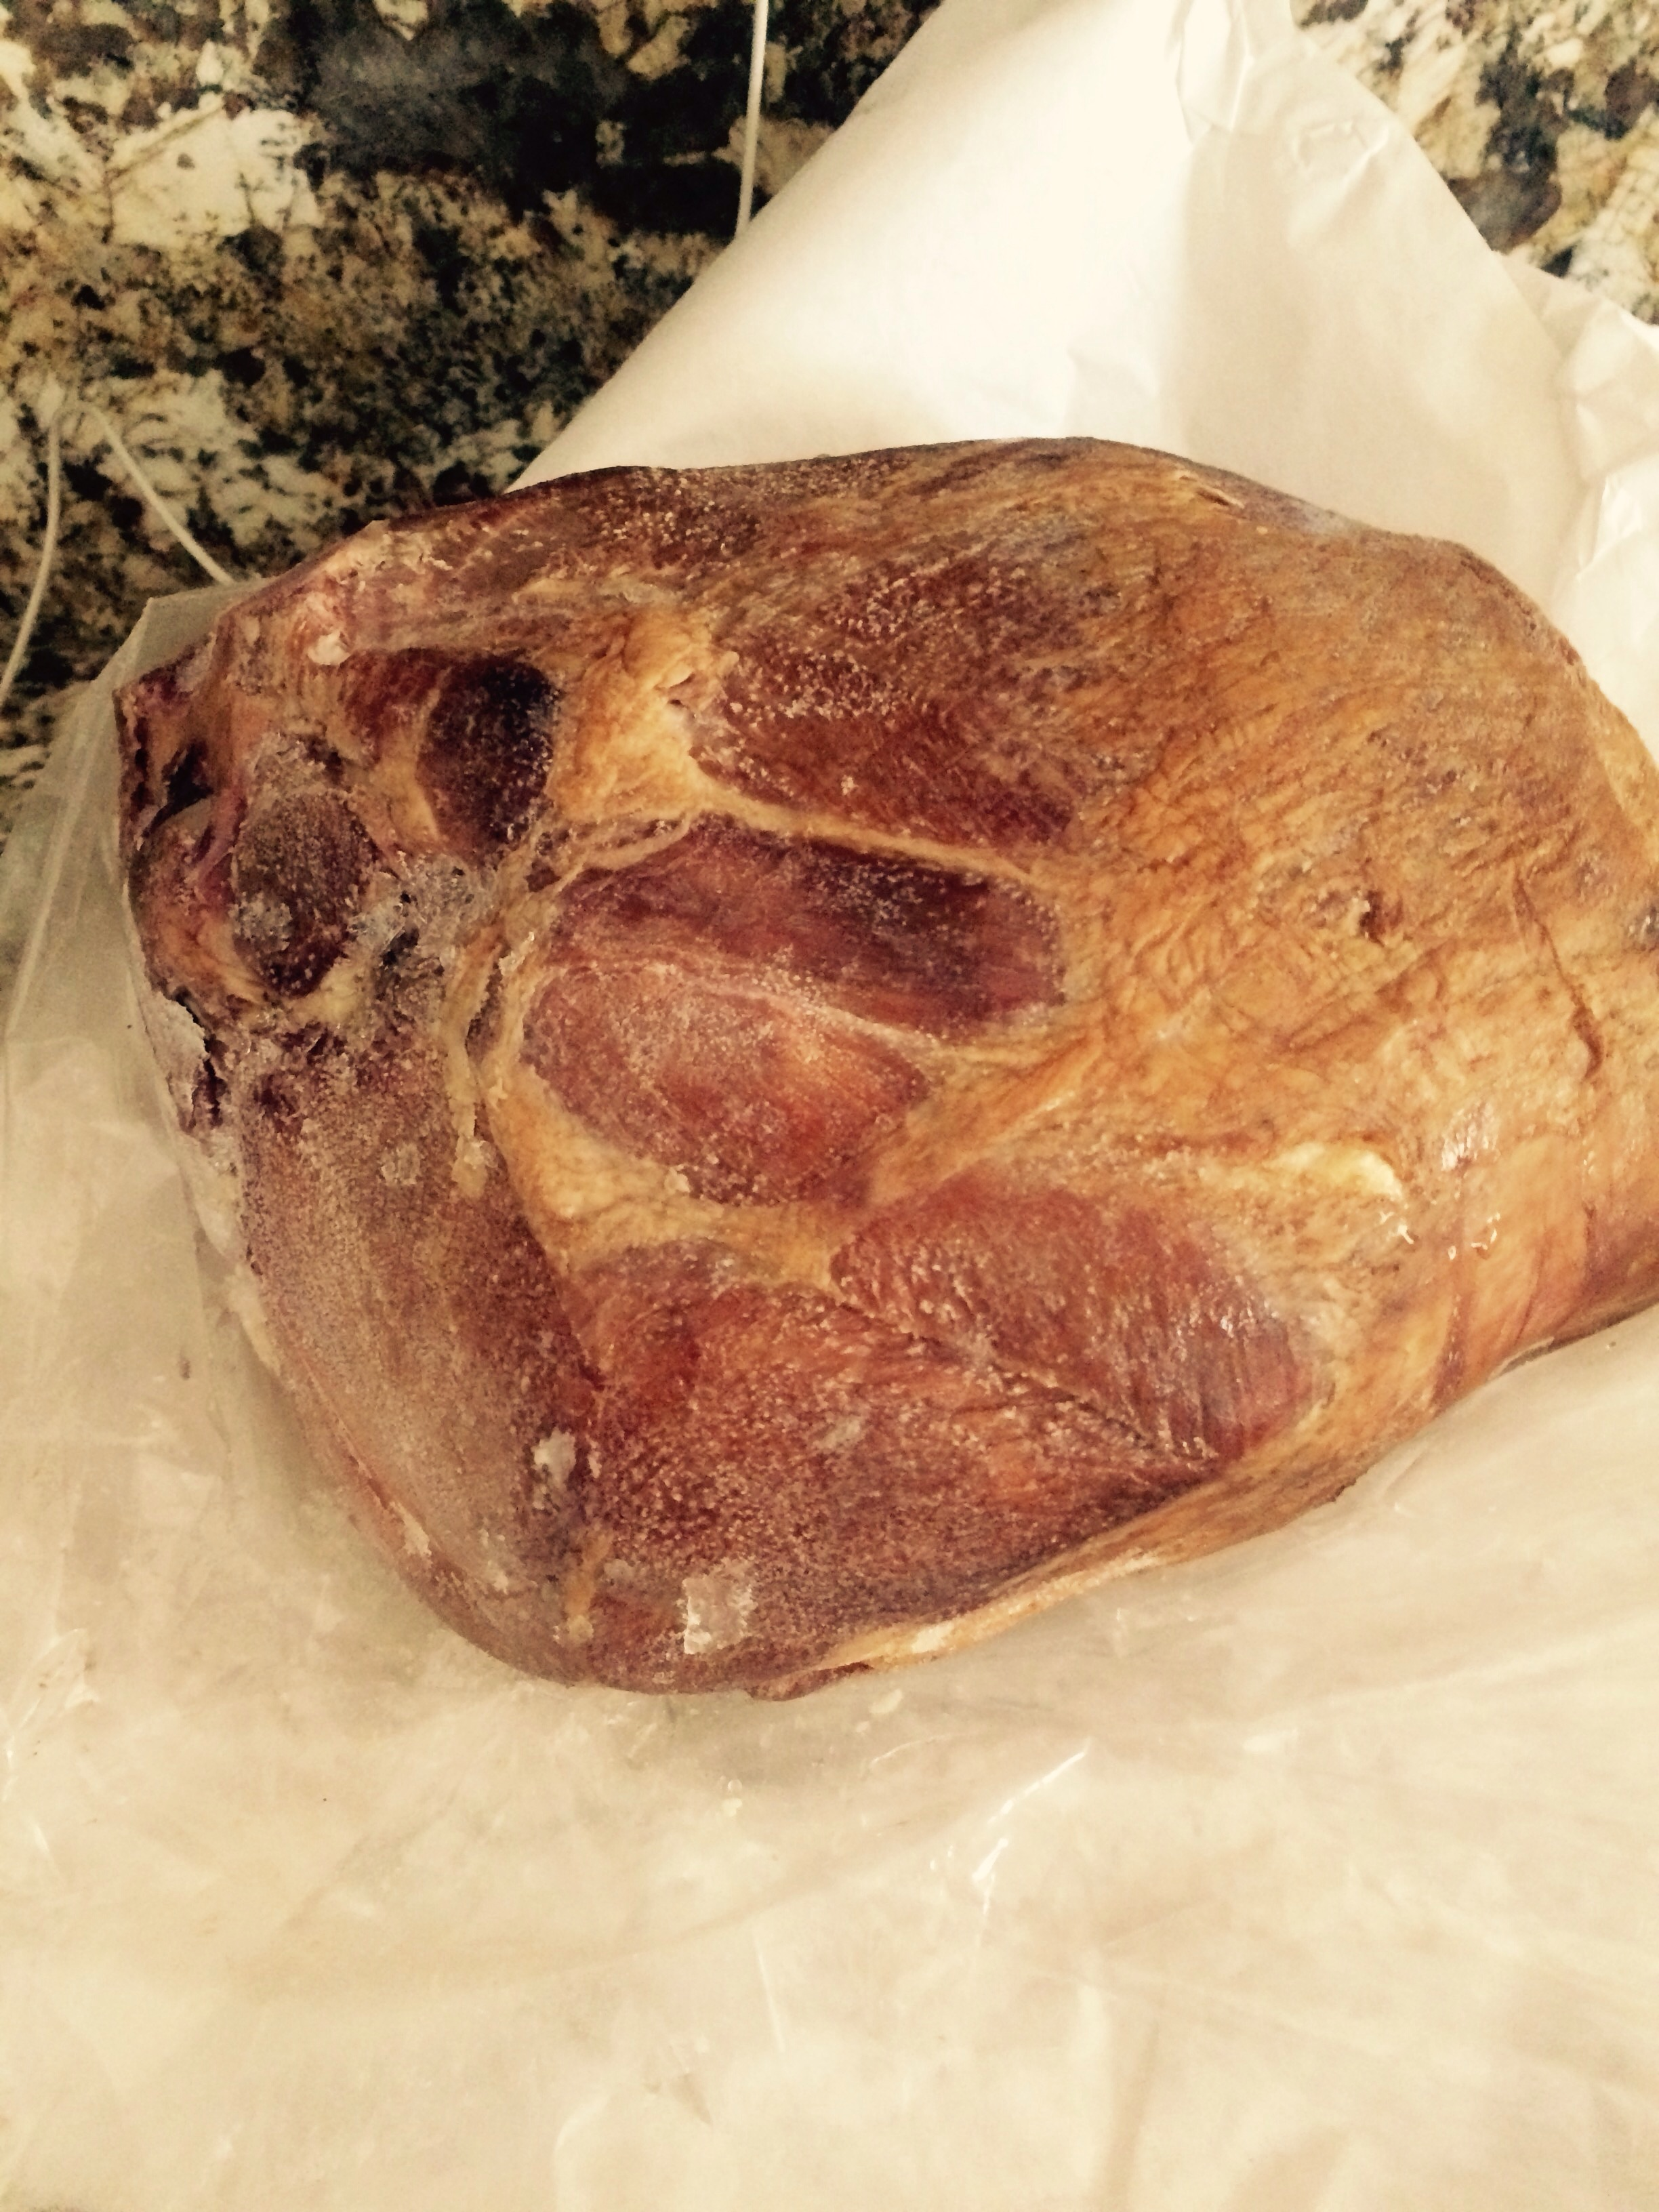 We had this ham smoked from one of our red wattle pigs